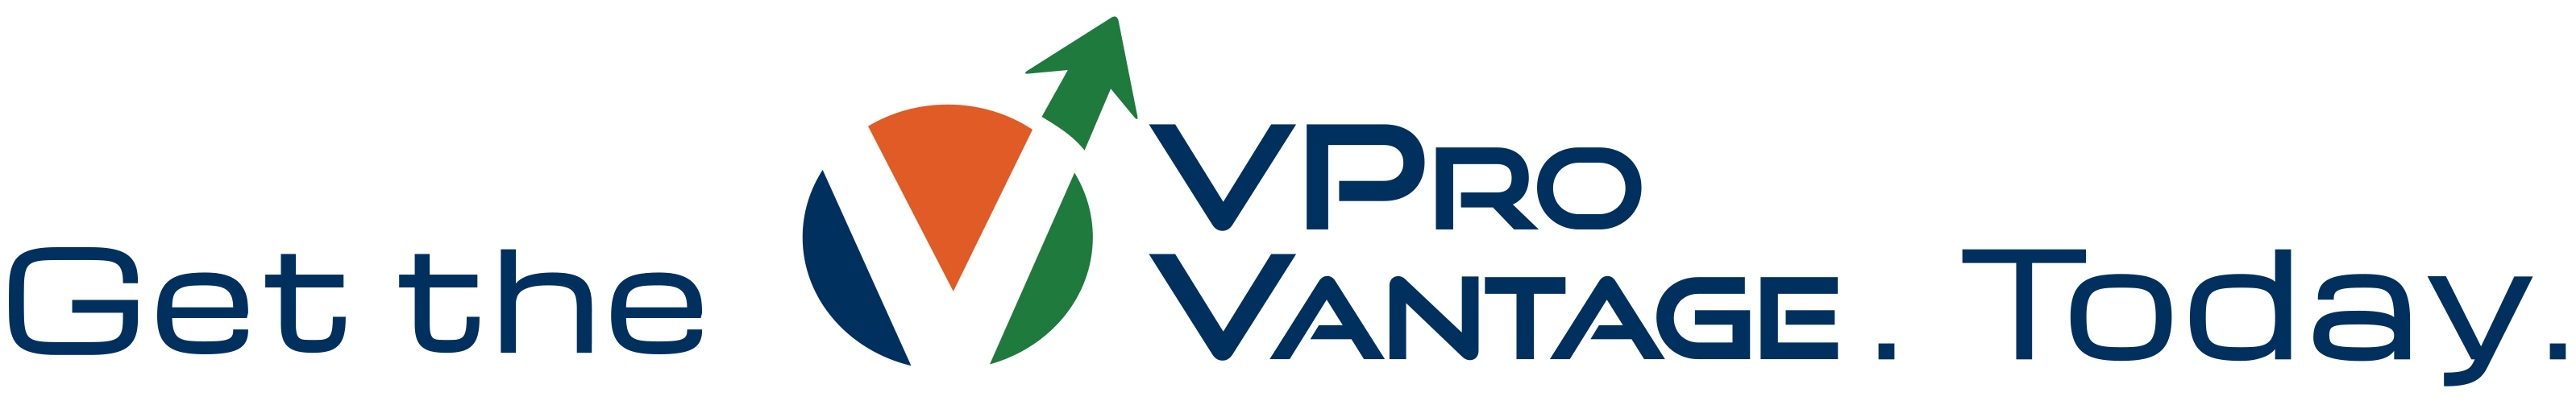 Get the VProVantage. Today.